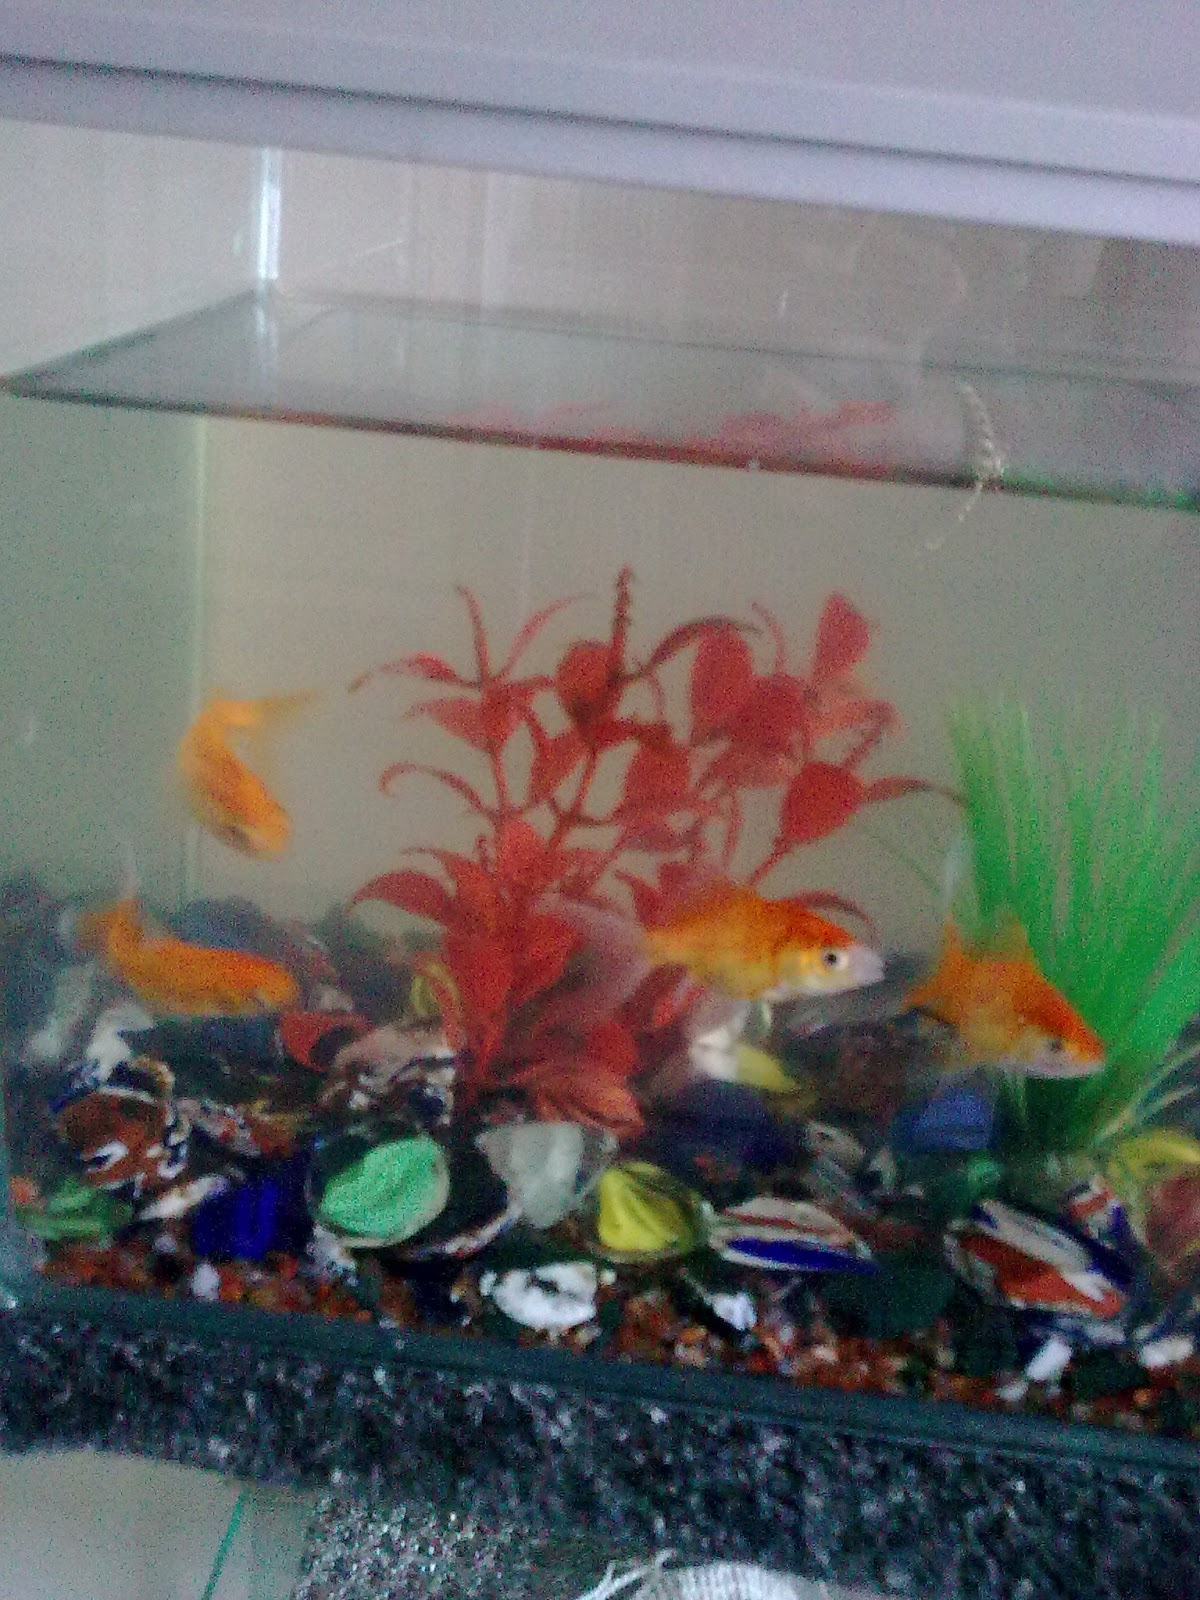 feng shui simple cures why fishes die feng shui for